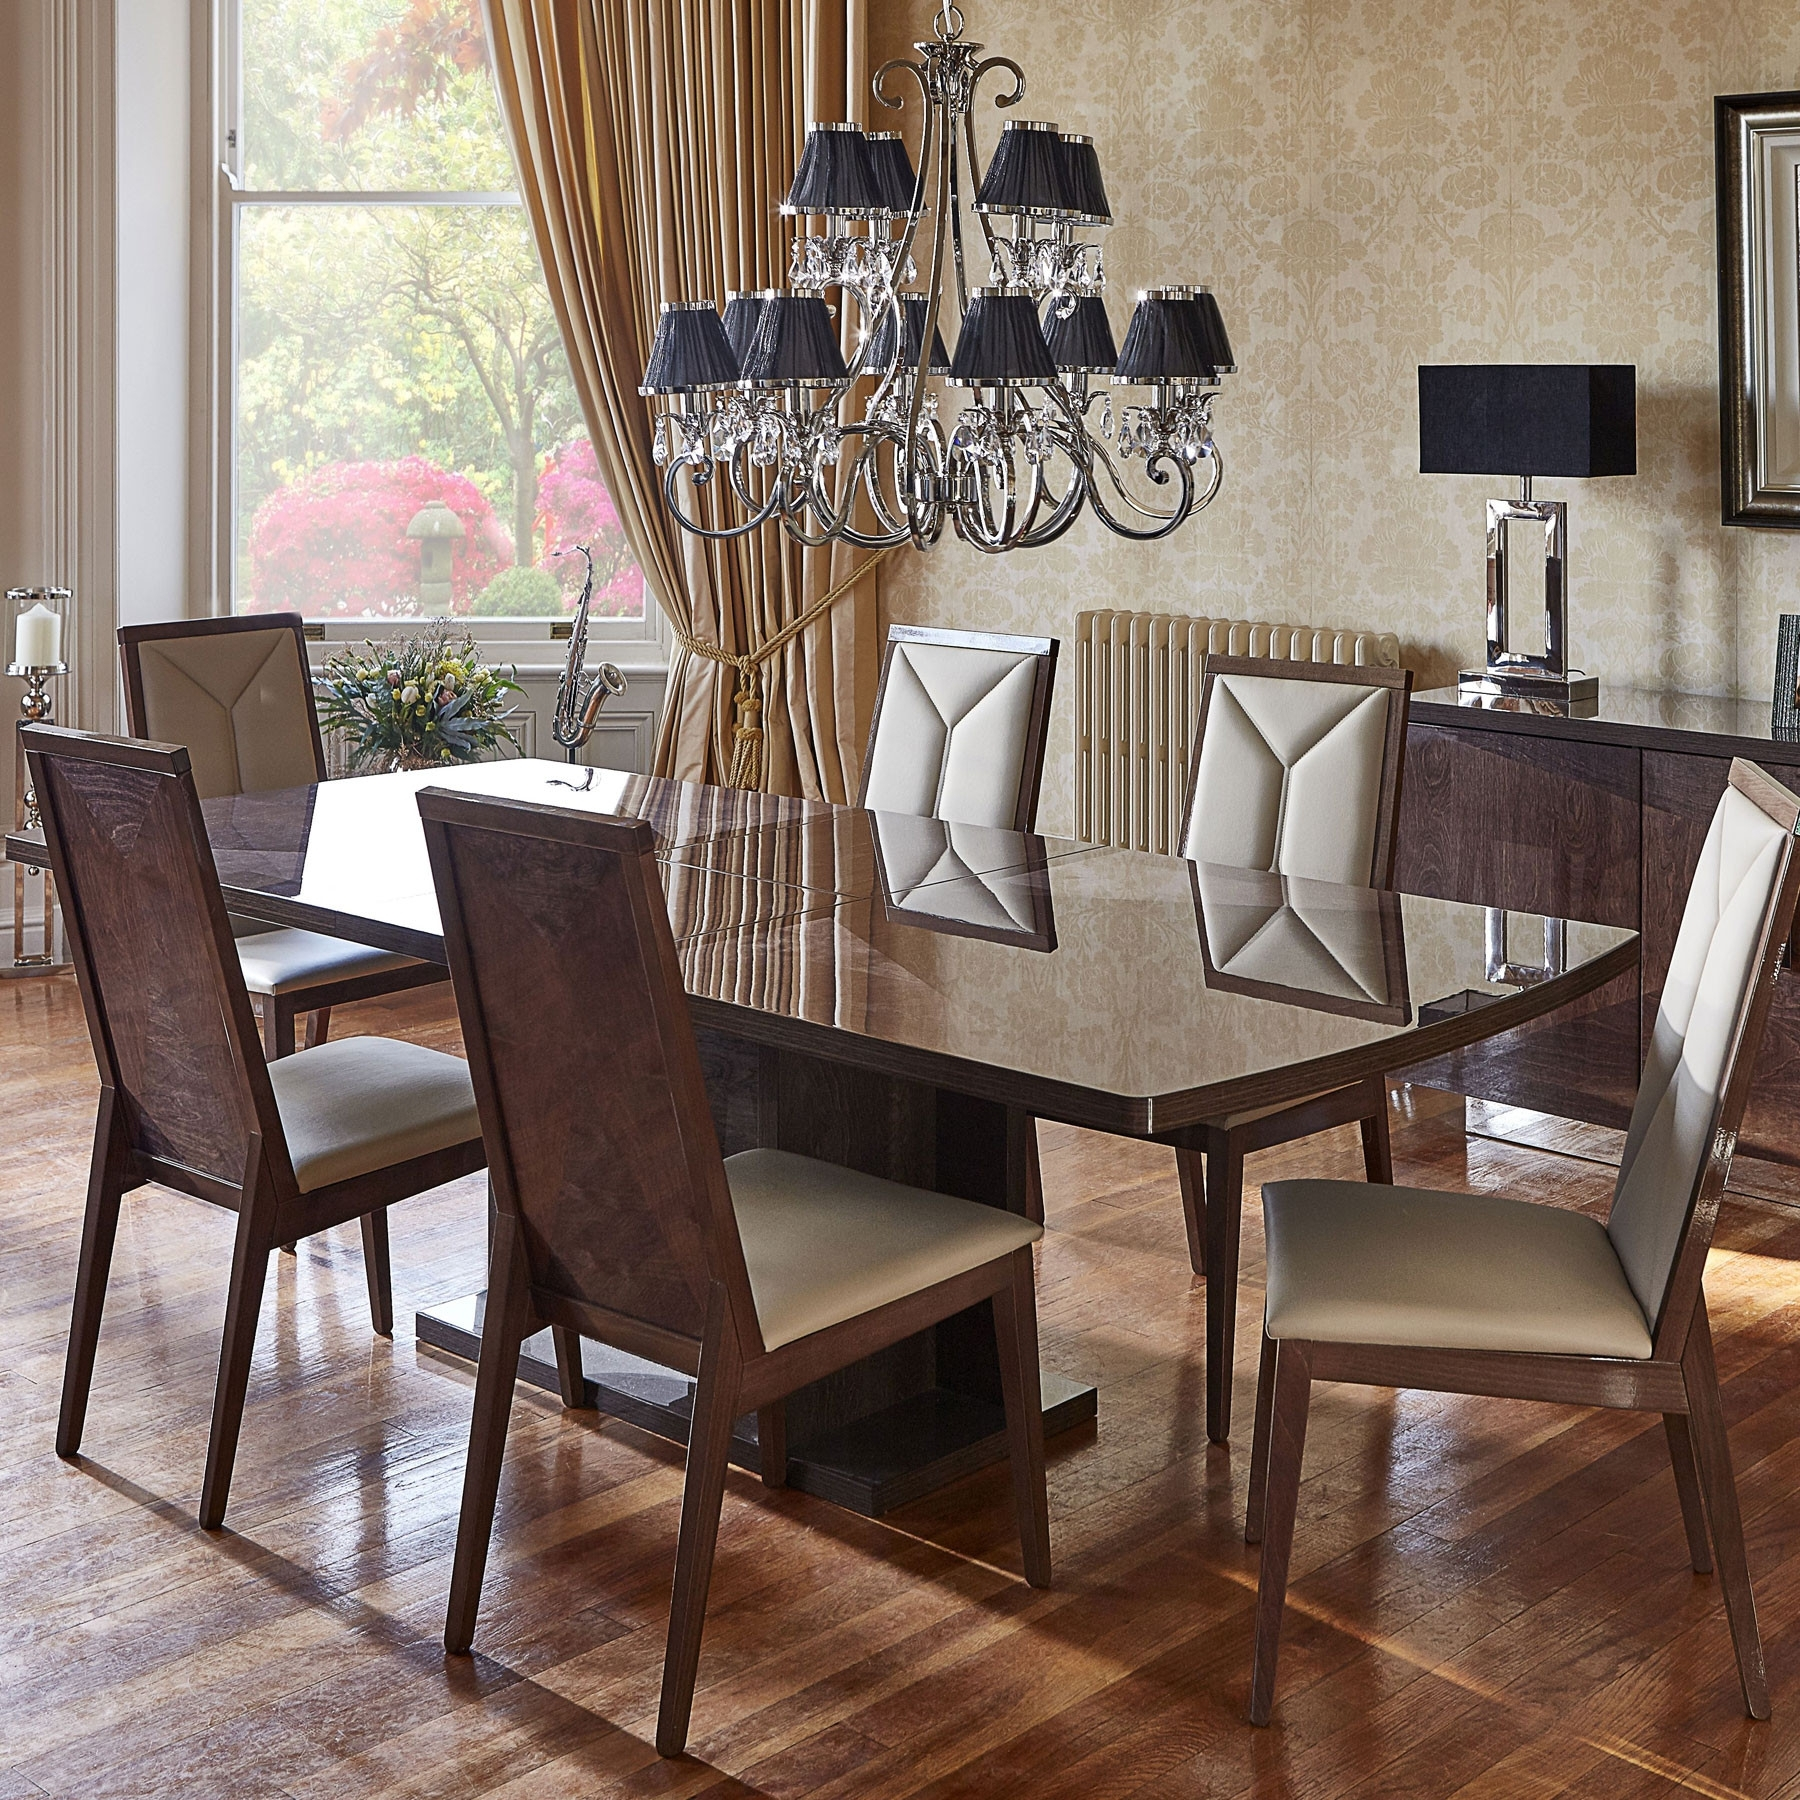 Vogue High Gloss Extending Dining Table & 6 Chairs regarding Most Recently Released High Gloss Dining Tables